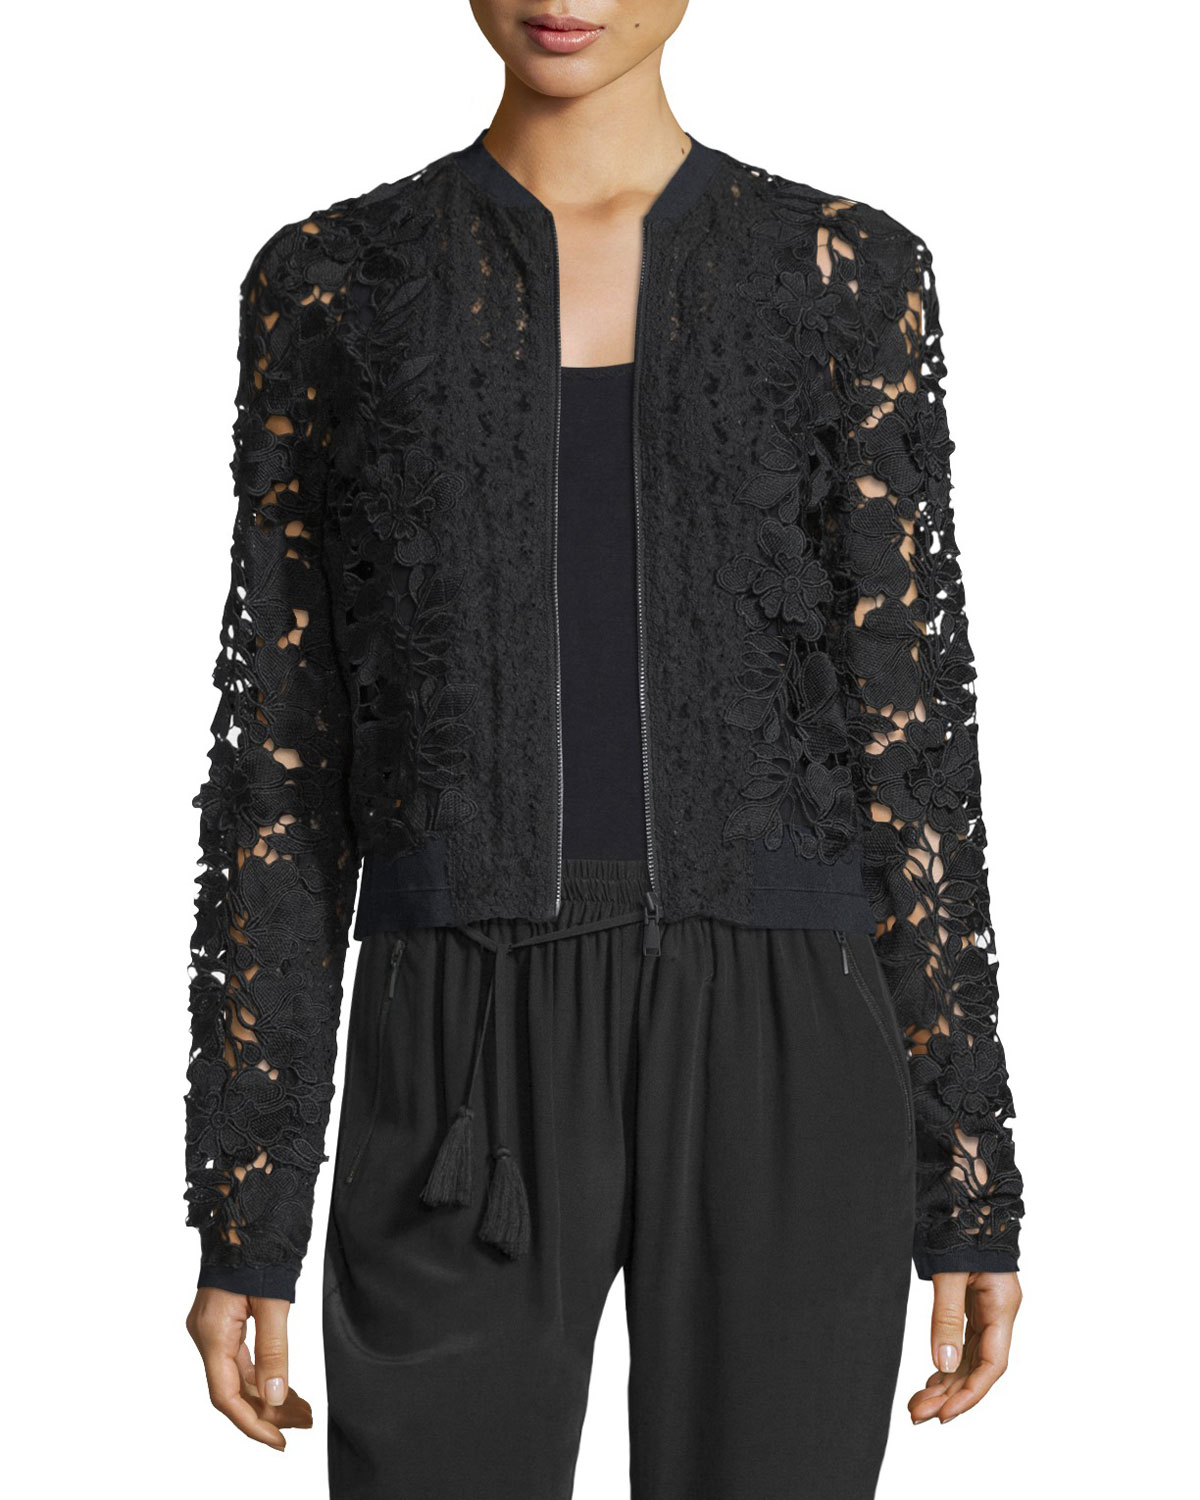 Glenna Lace Bomber Jacket, Black